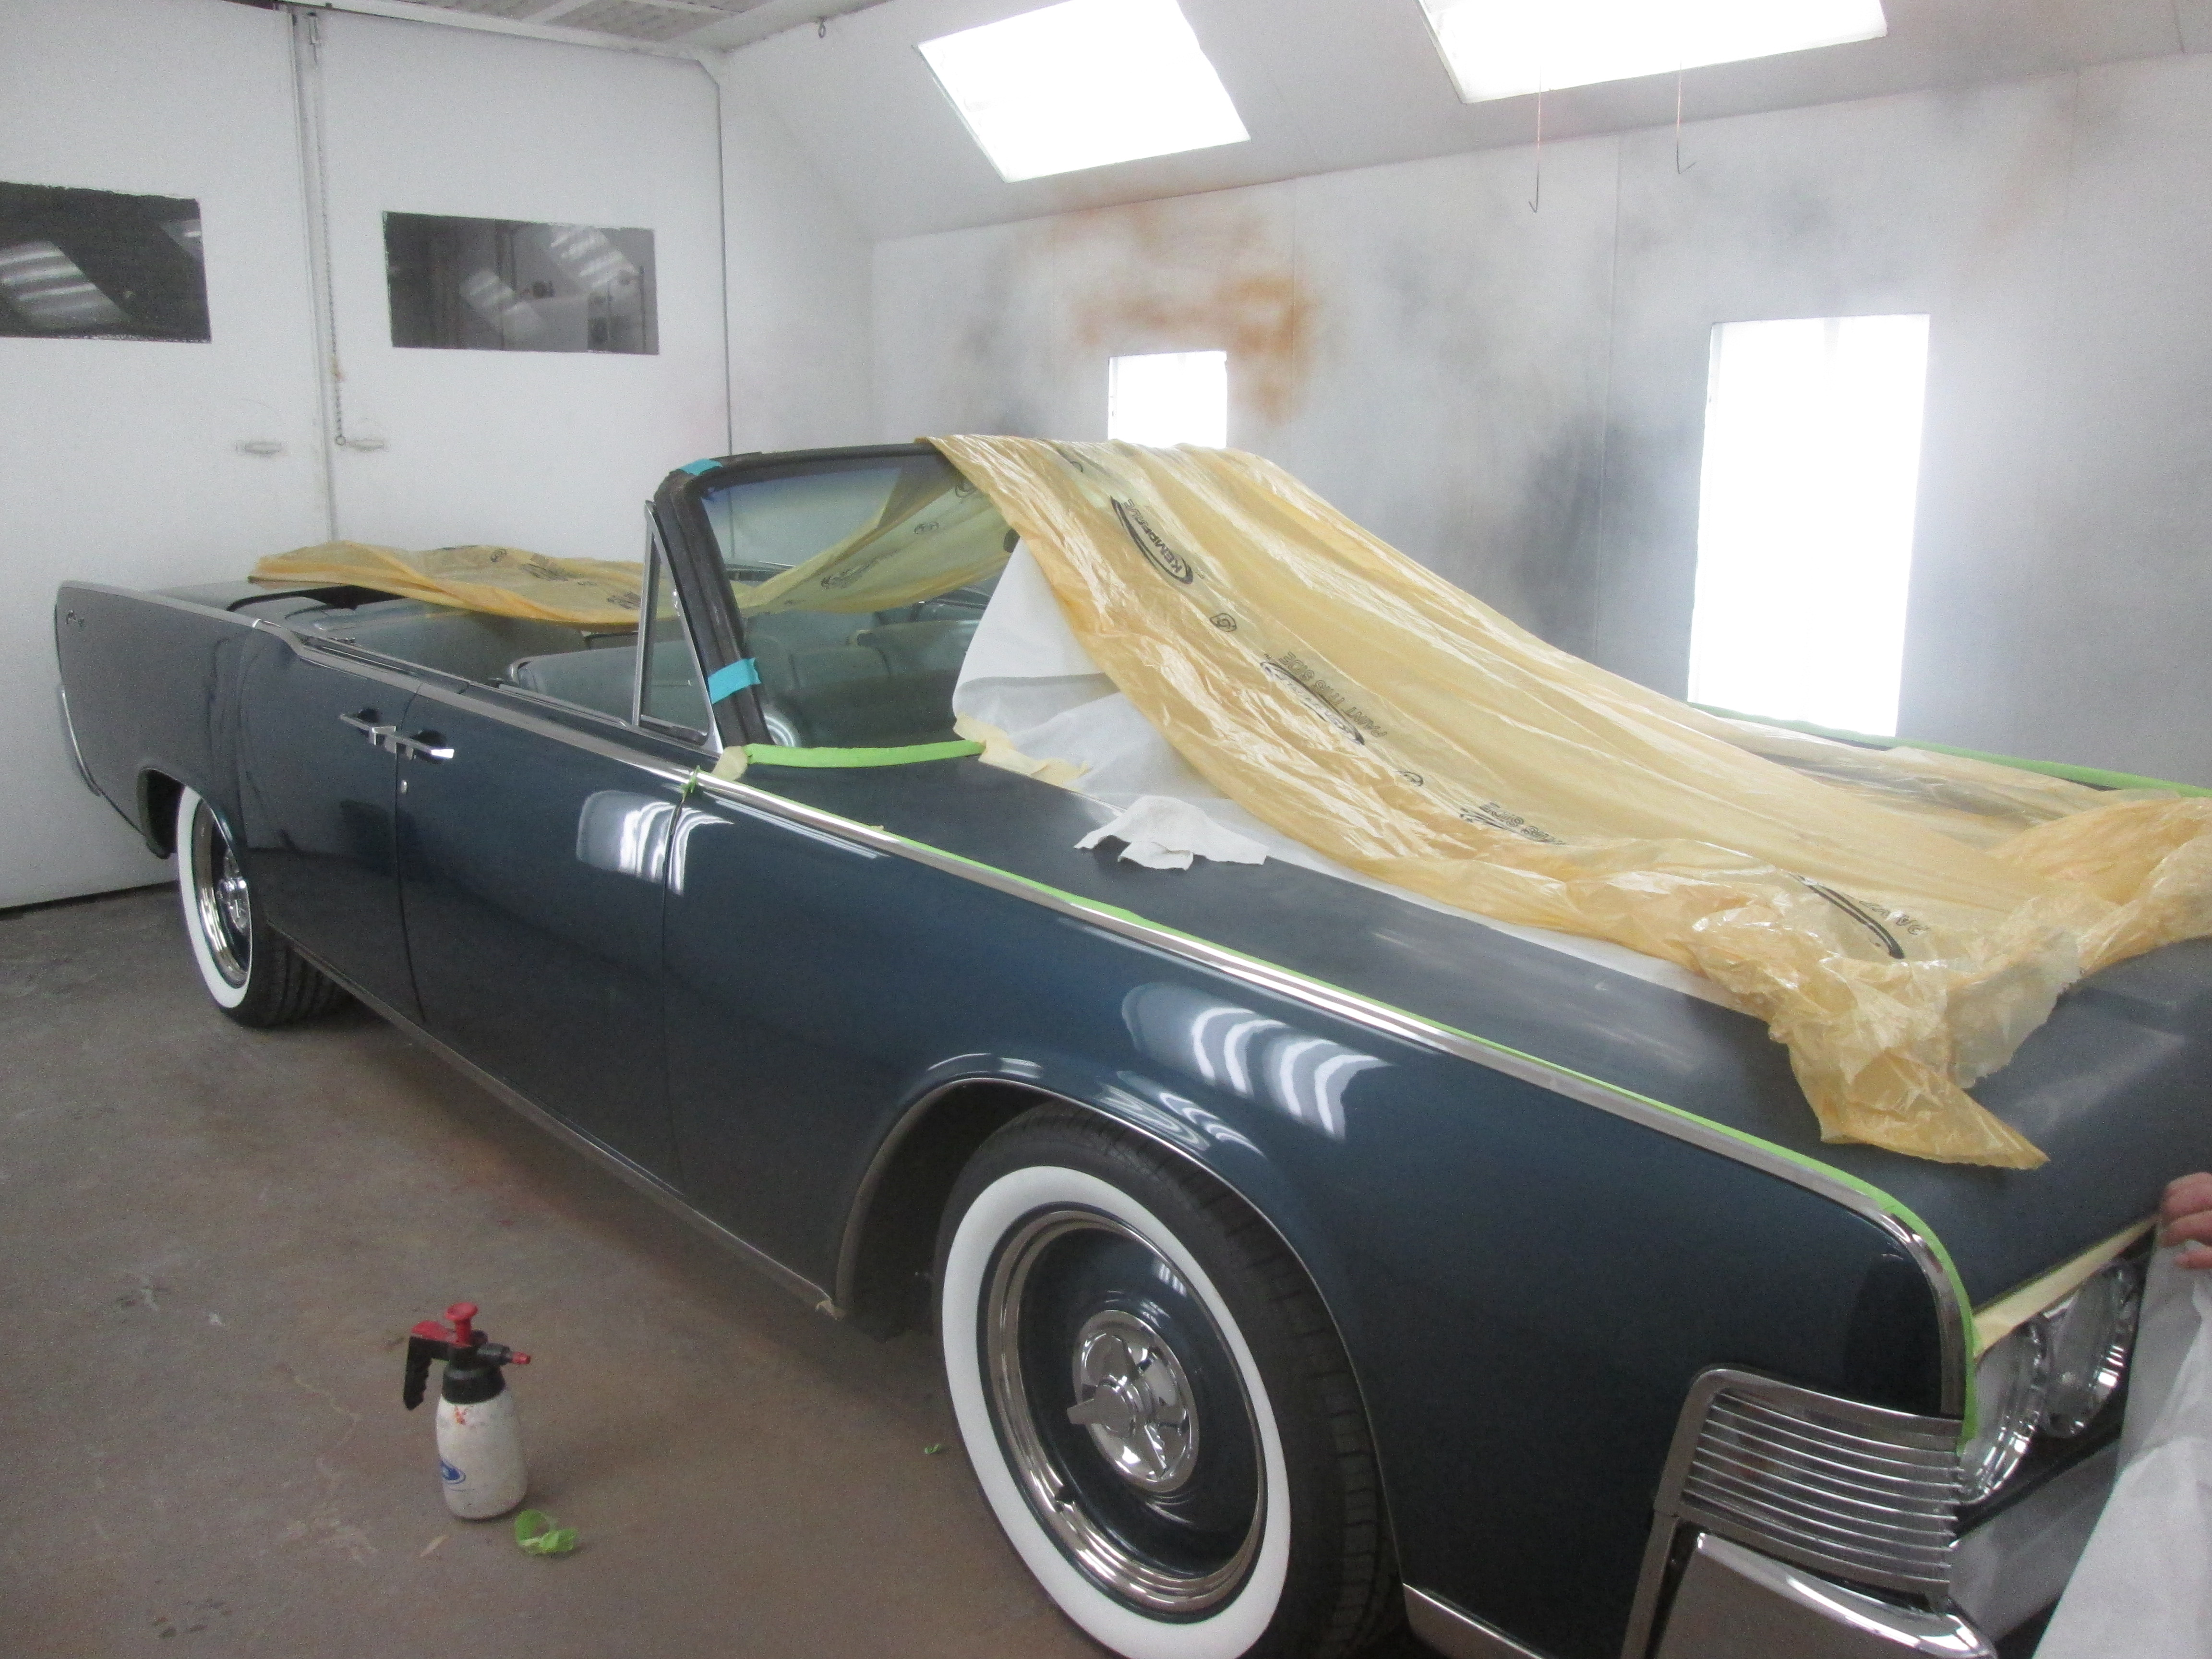 1965 lincoln continental convertible resto mod pauls rods and restos. Black Bedroom Furniture Sets. Home Design Ideas